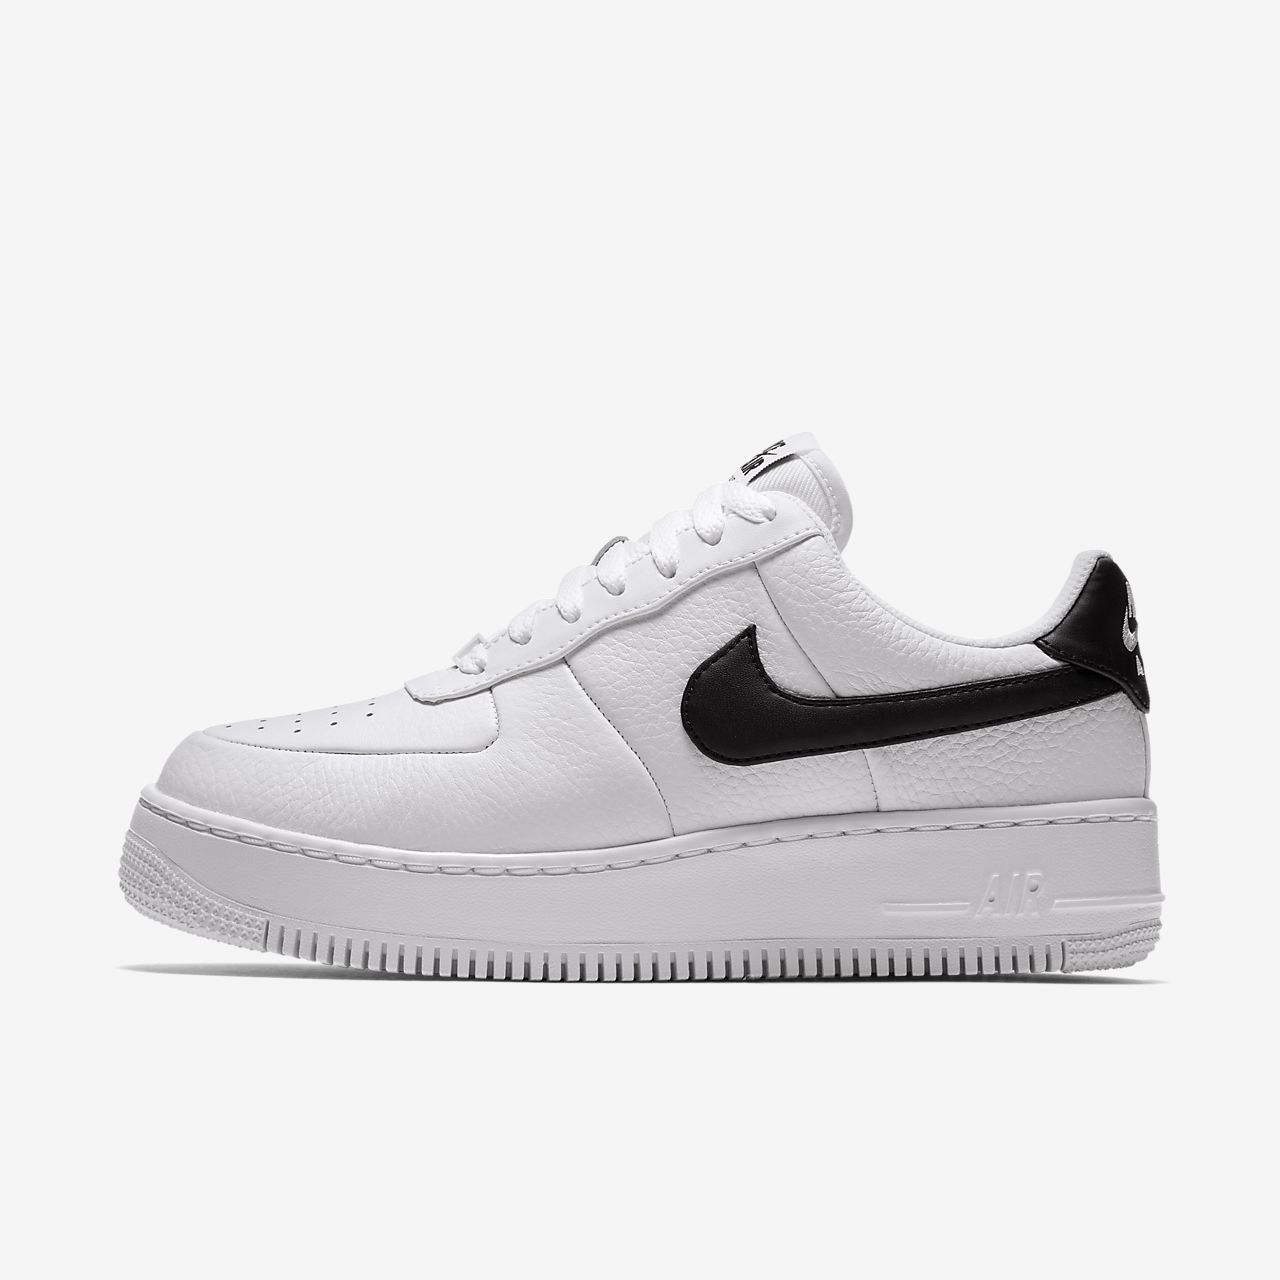 the latest c6487 edc54 ... where to buy nike air force 1 upstep womens shoe 4d0ca 8d78d